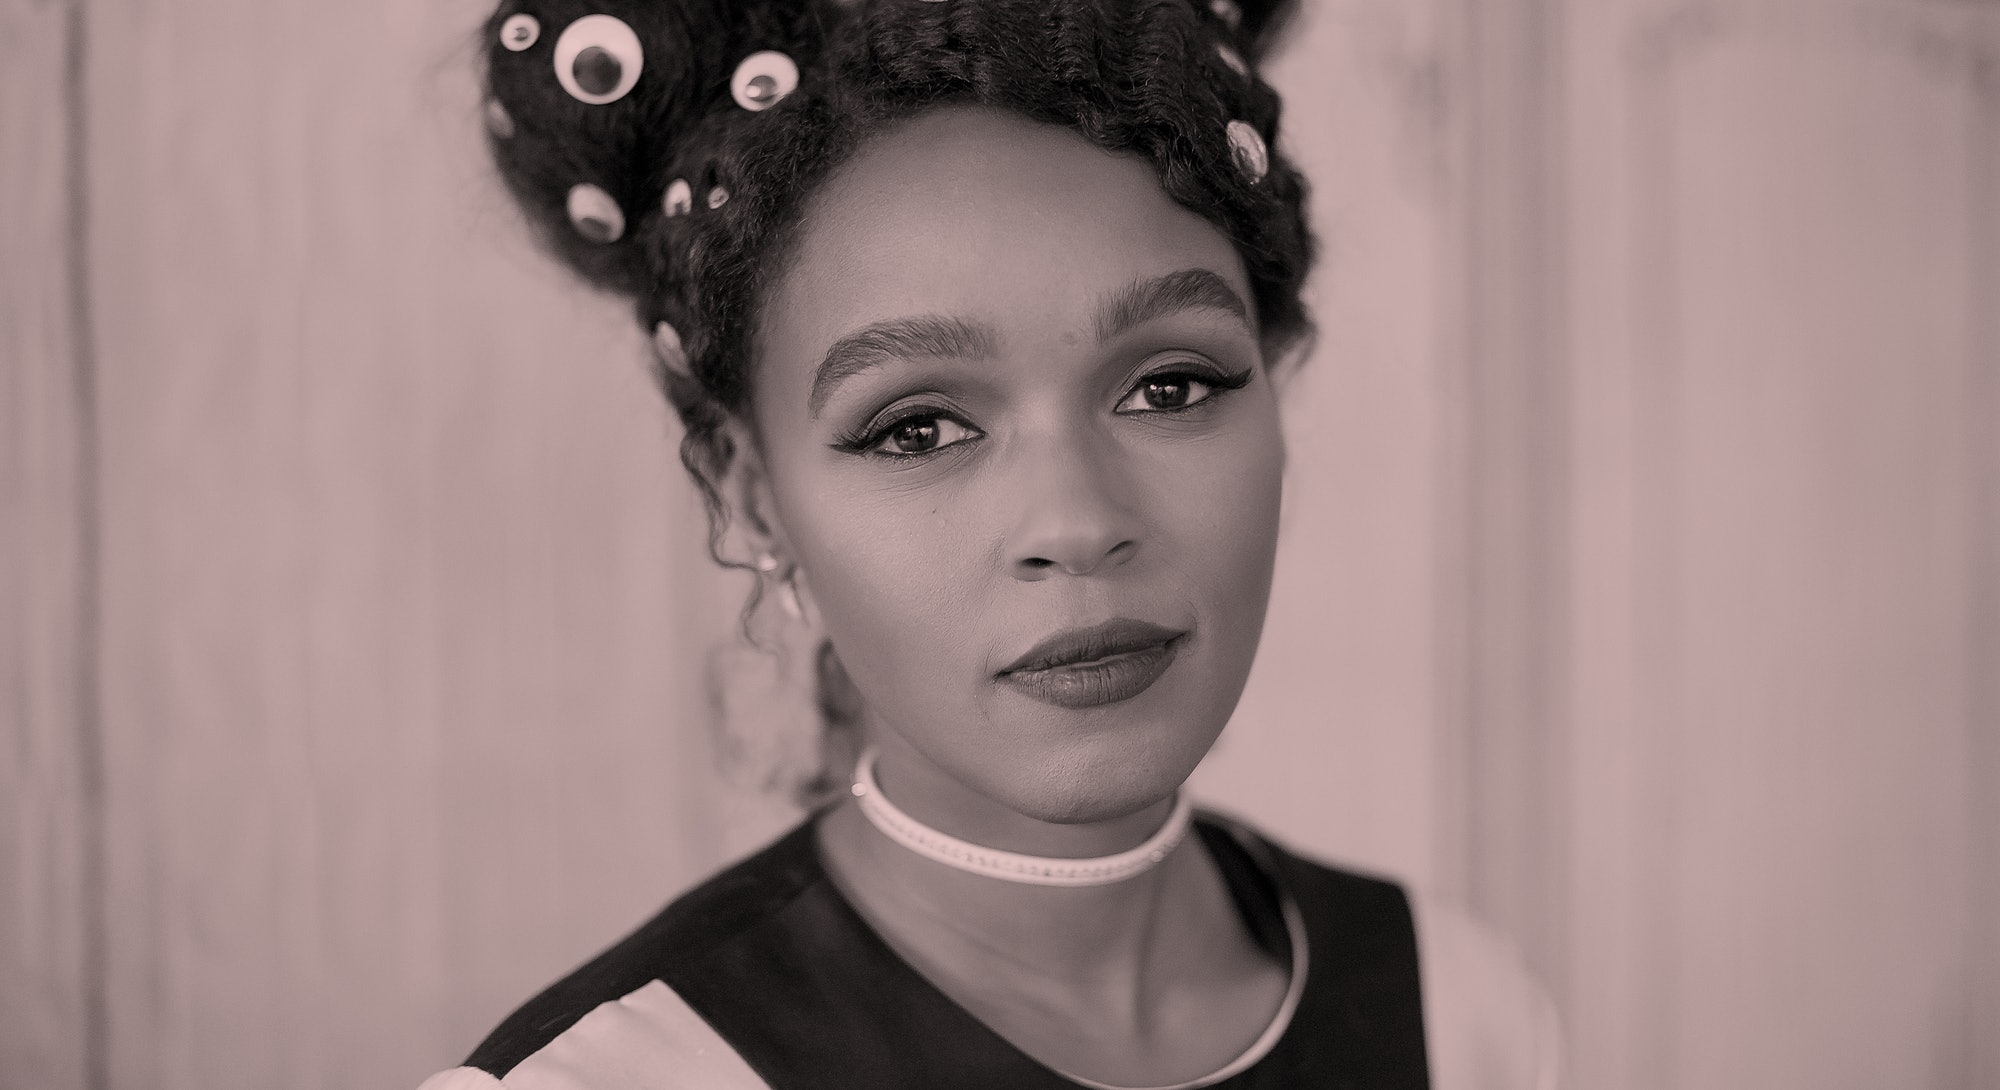 Janelle Monae, wearing her hair in two braided space buns that featured eye stickers, smiles at the camera